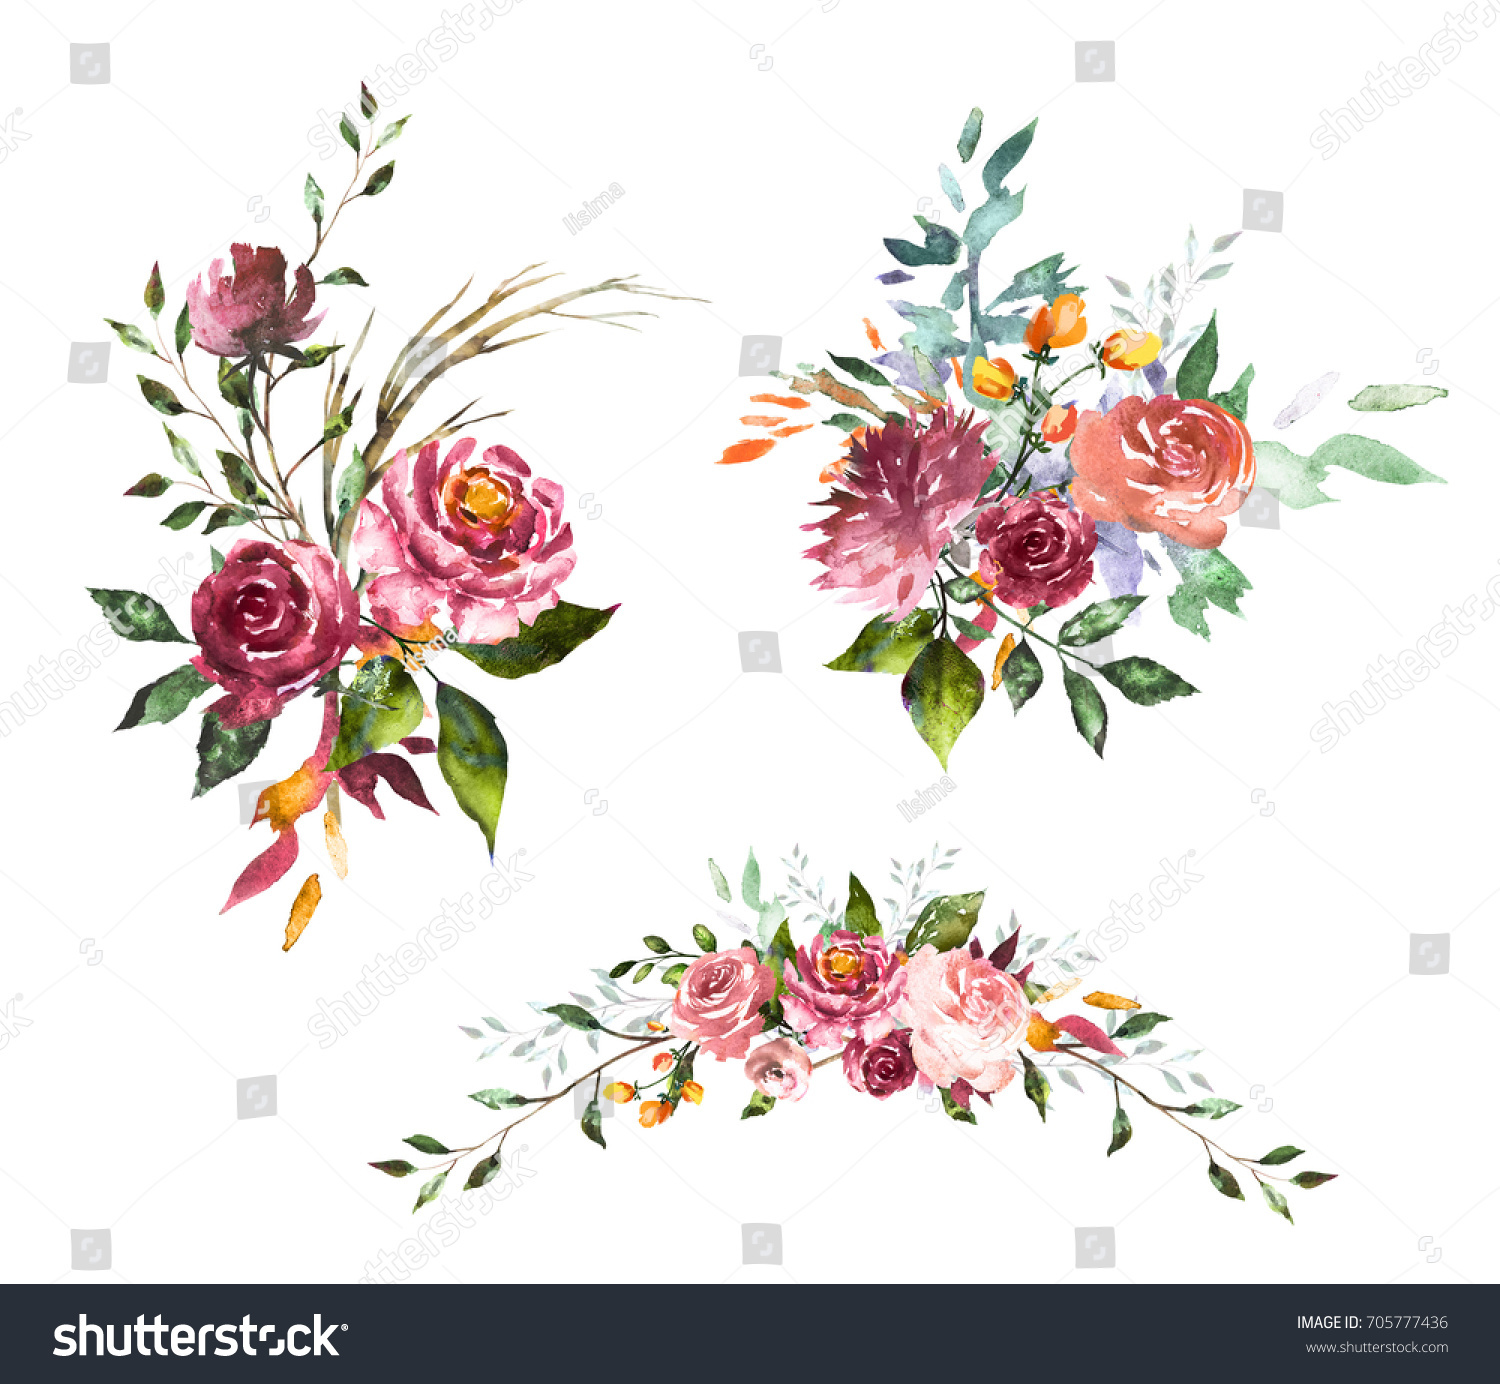 Set watercolor flowers hand painted floral stock illustration set watercolor flowers hand painted floral illustration bouquet of flowers pink rose design izmirmasajfo Choice Image